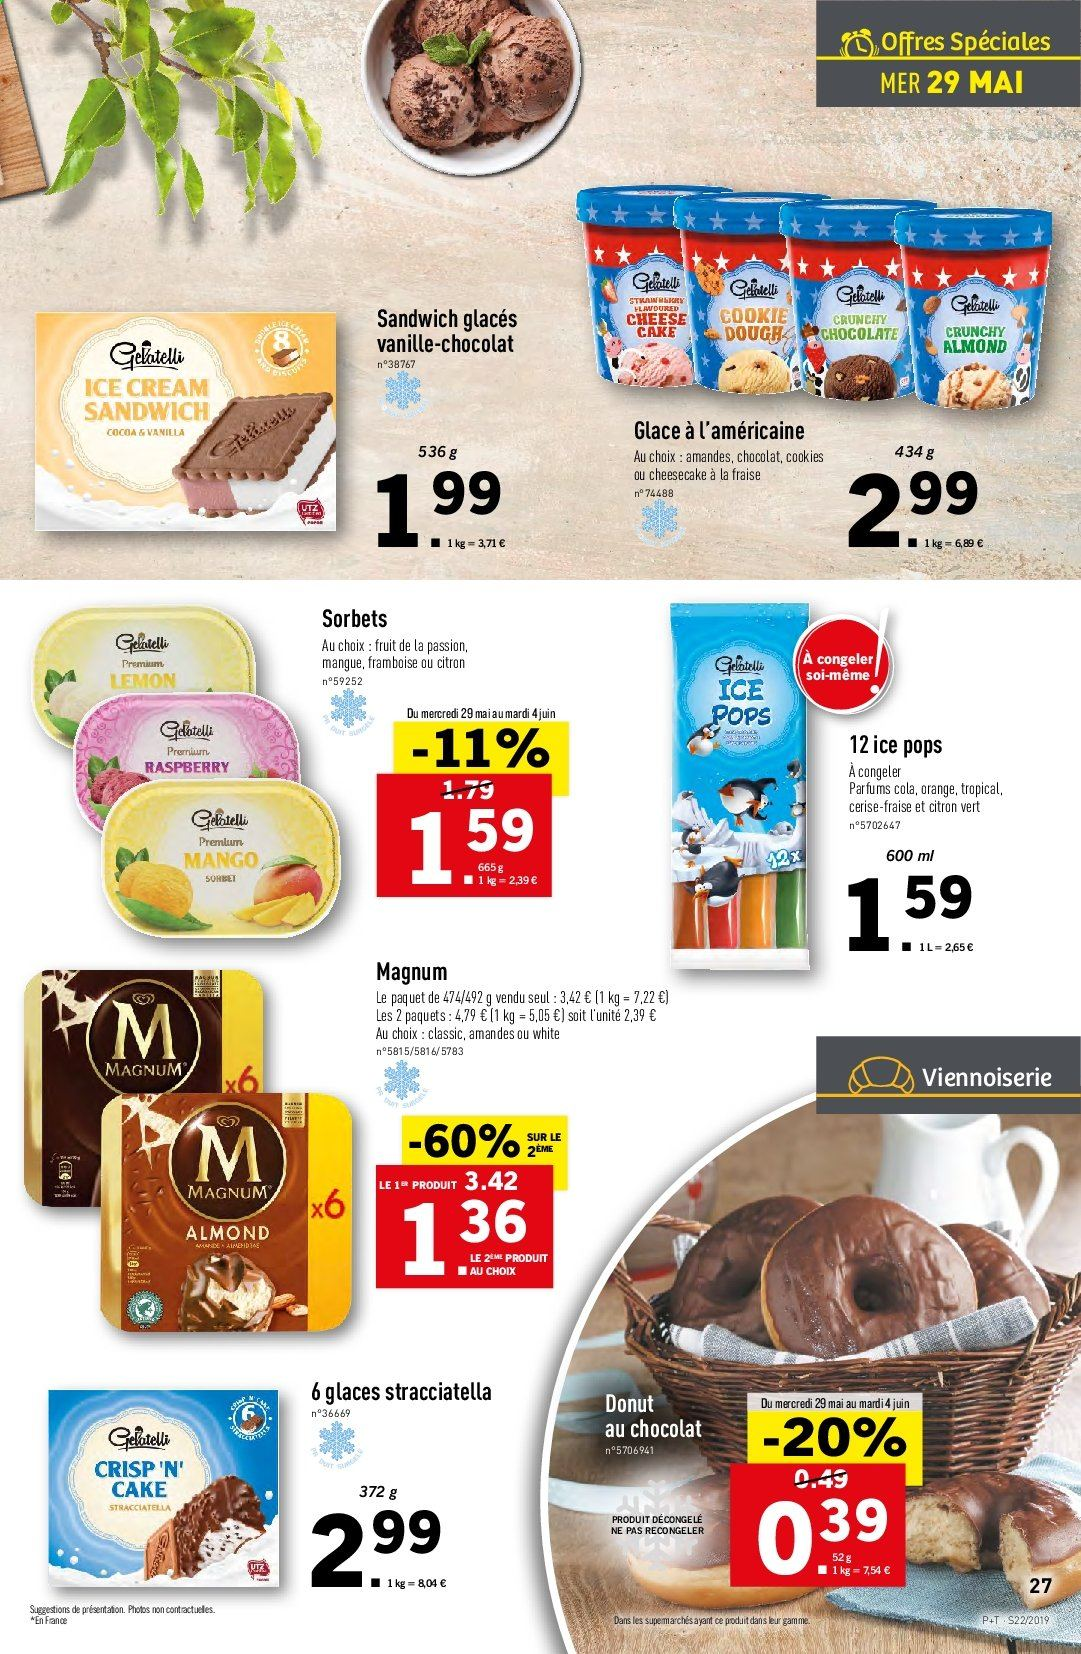 Catalogue Lidl - 29.05.2019 - 04.06.2019. Page 27.